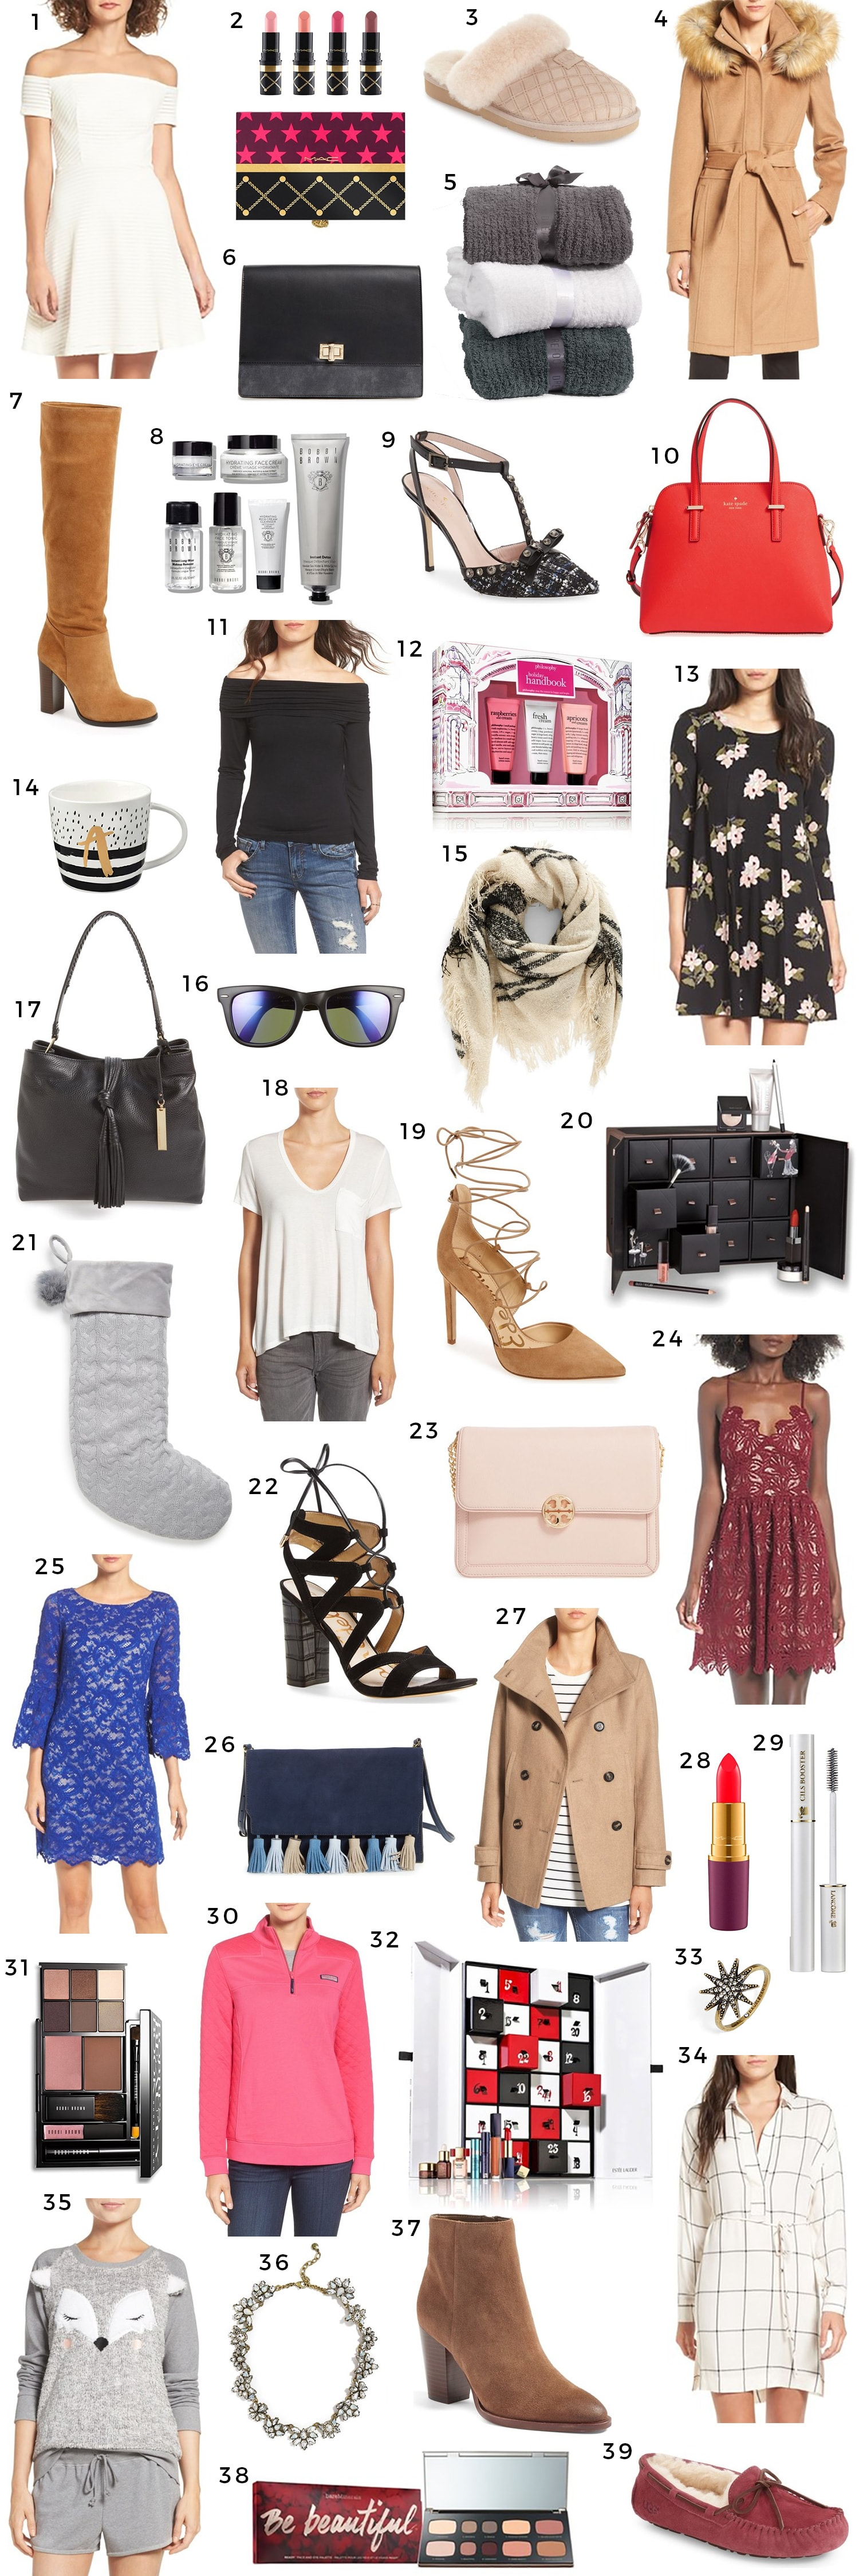 the-nordstrom-half-yearly-sale-picks-best-after-christmas-deals